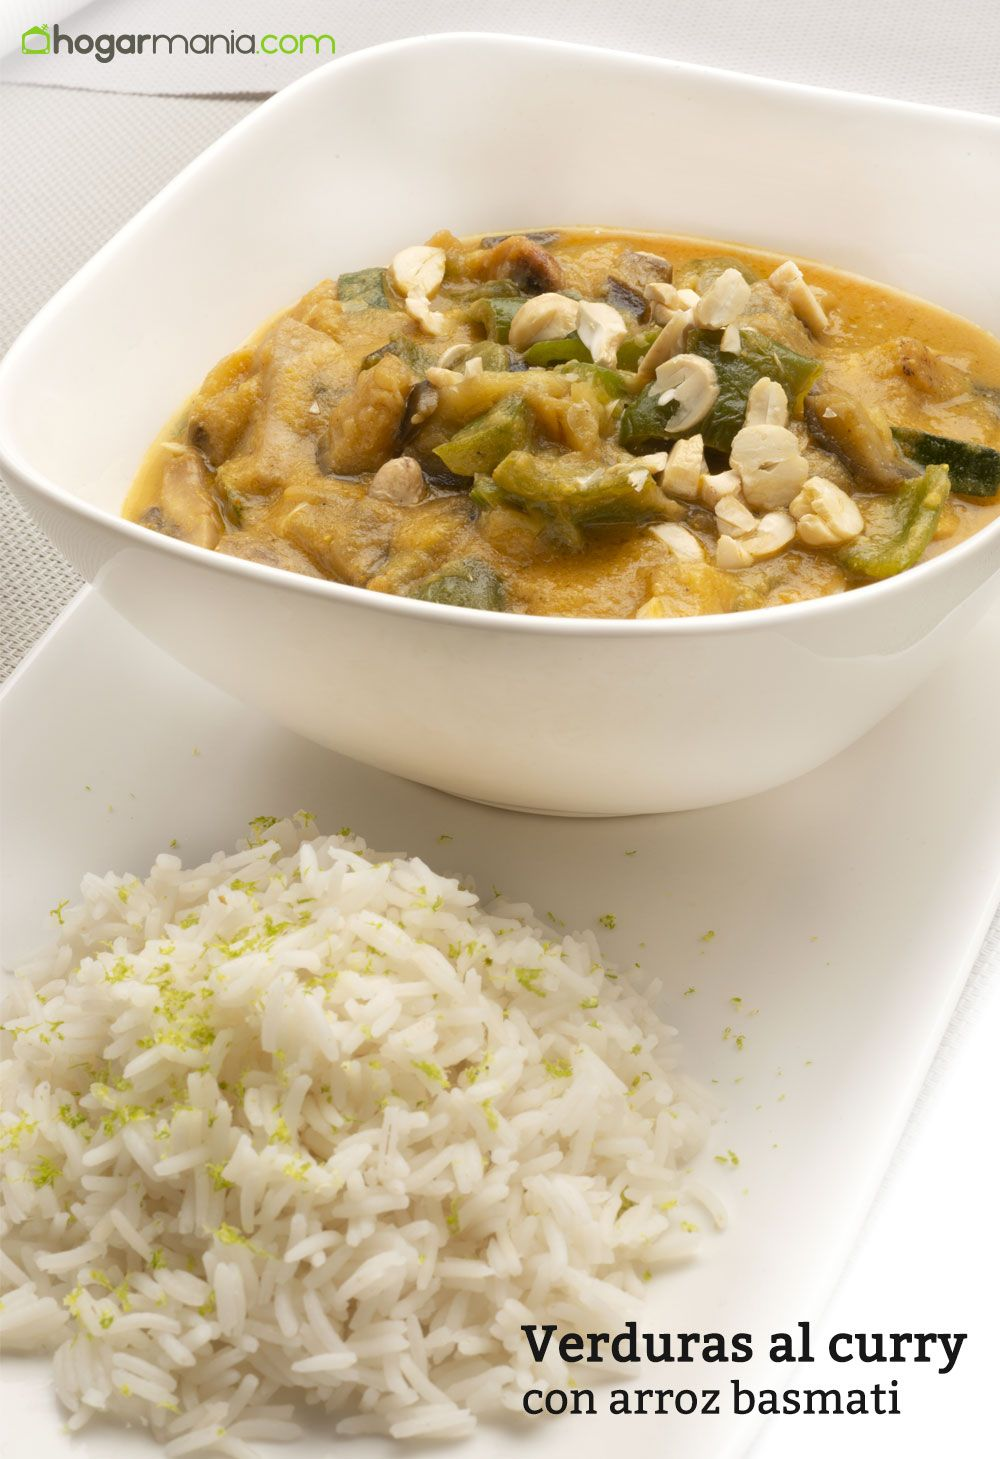 Verduras al curry con arroz basmati